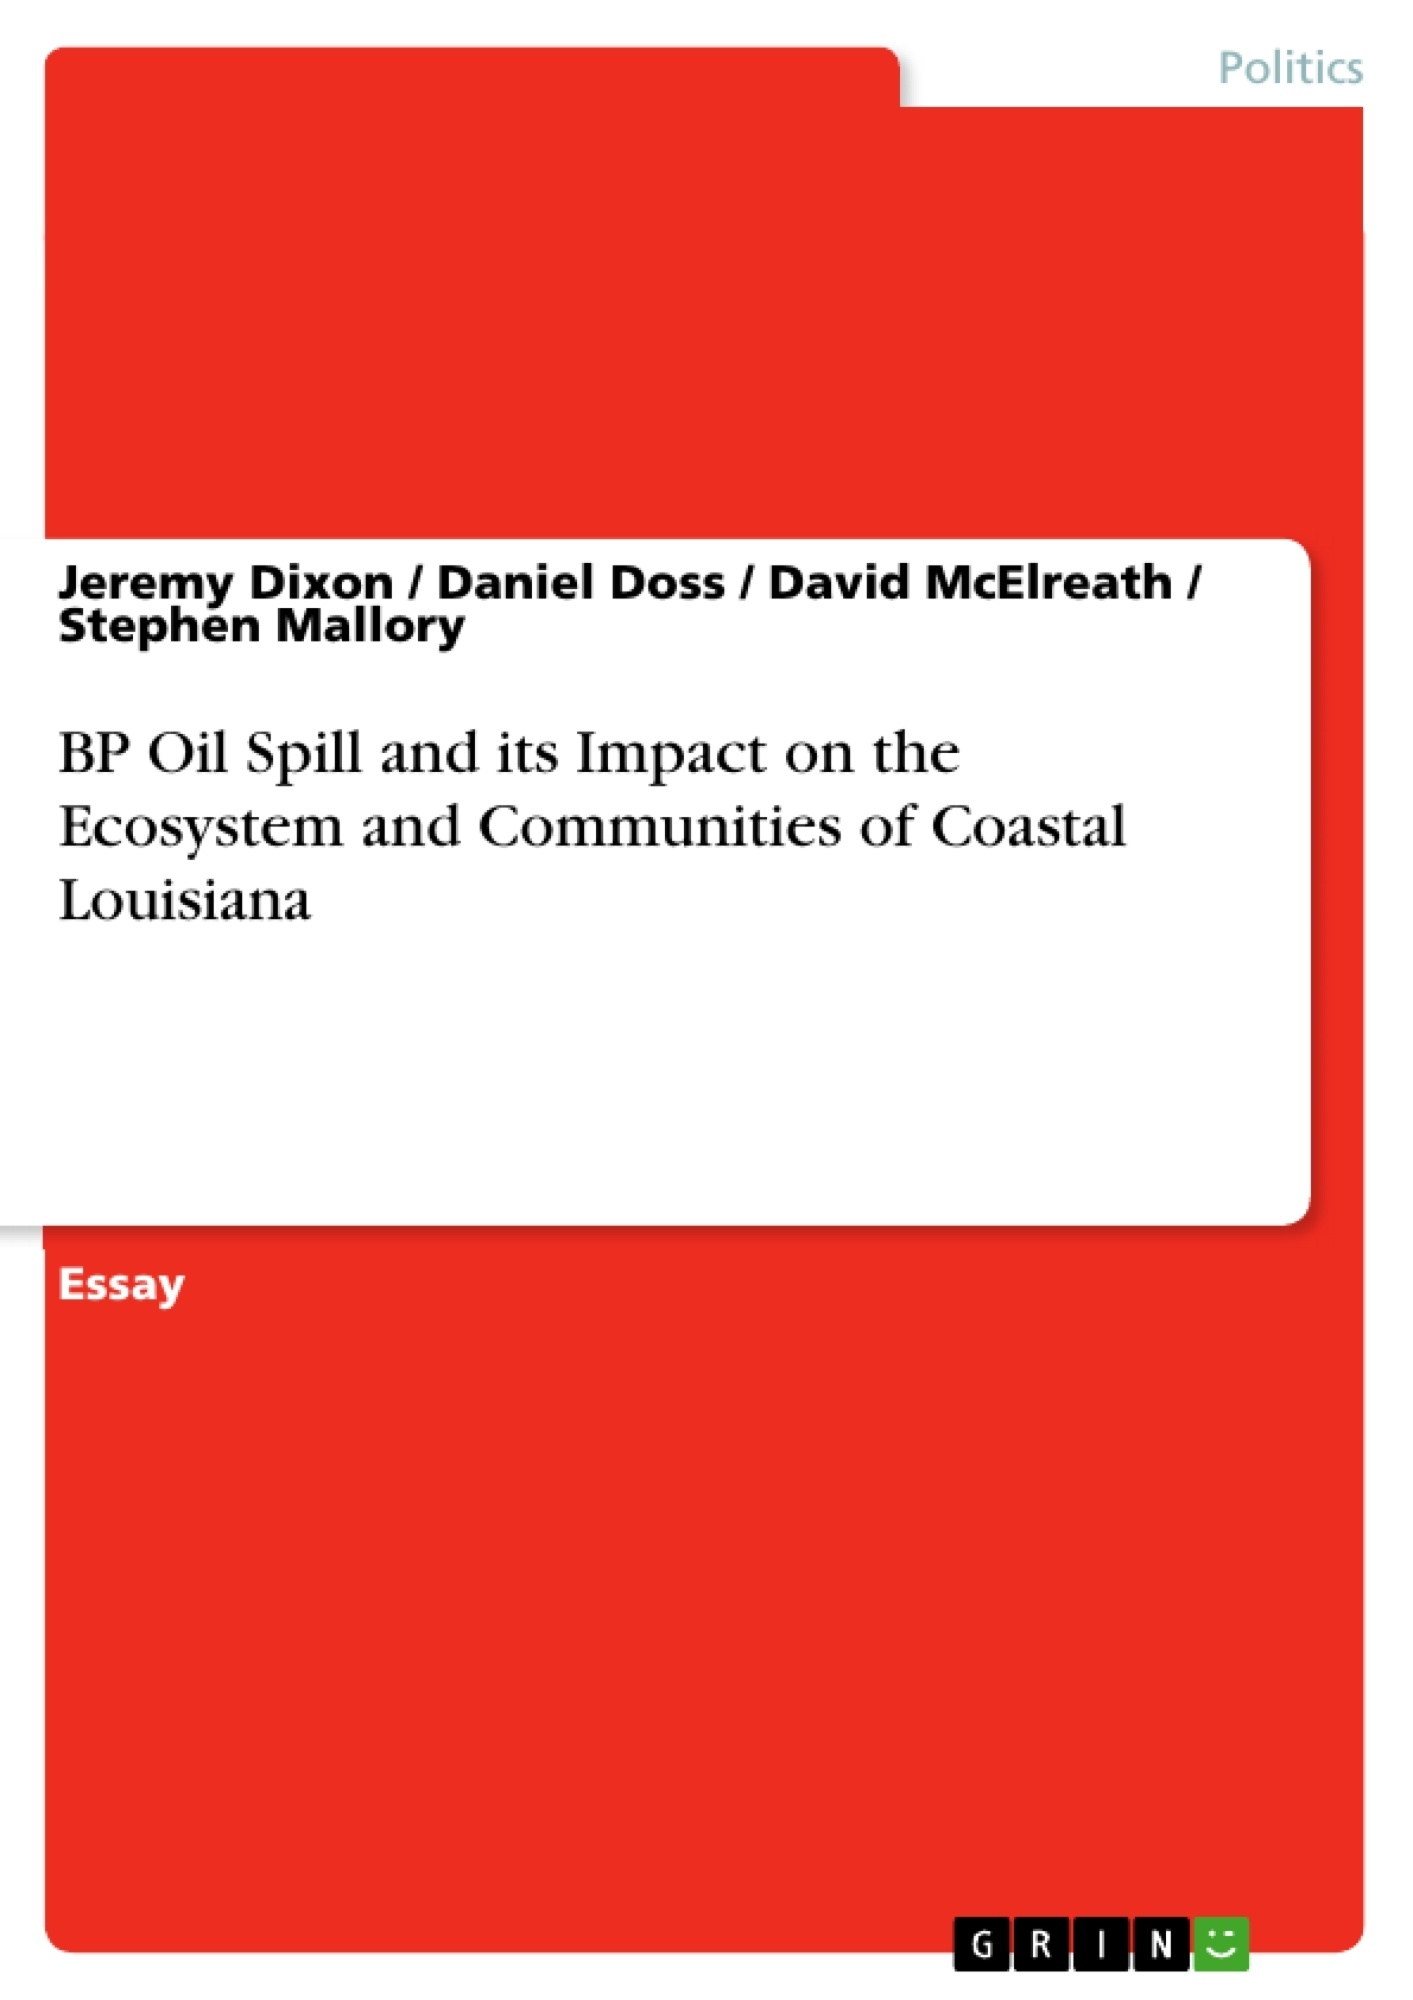 Title: BP Oil Spill and its Impact on the Ecosystem and Communities of Coastal Louisiana